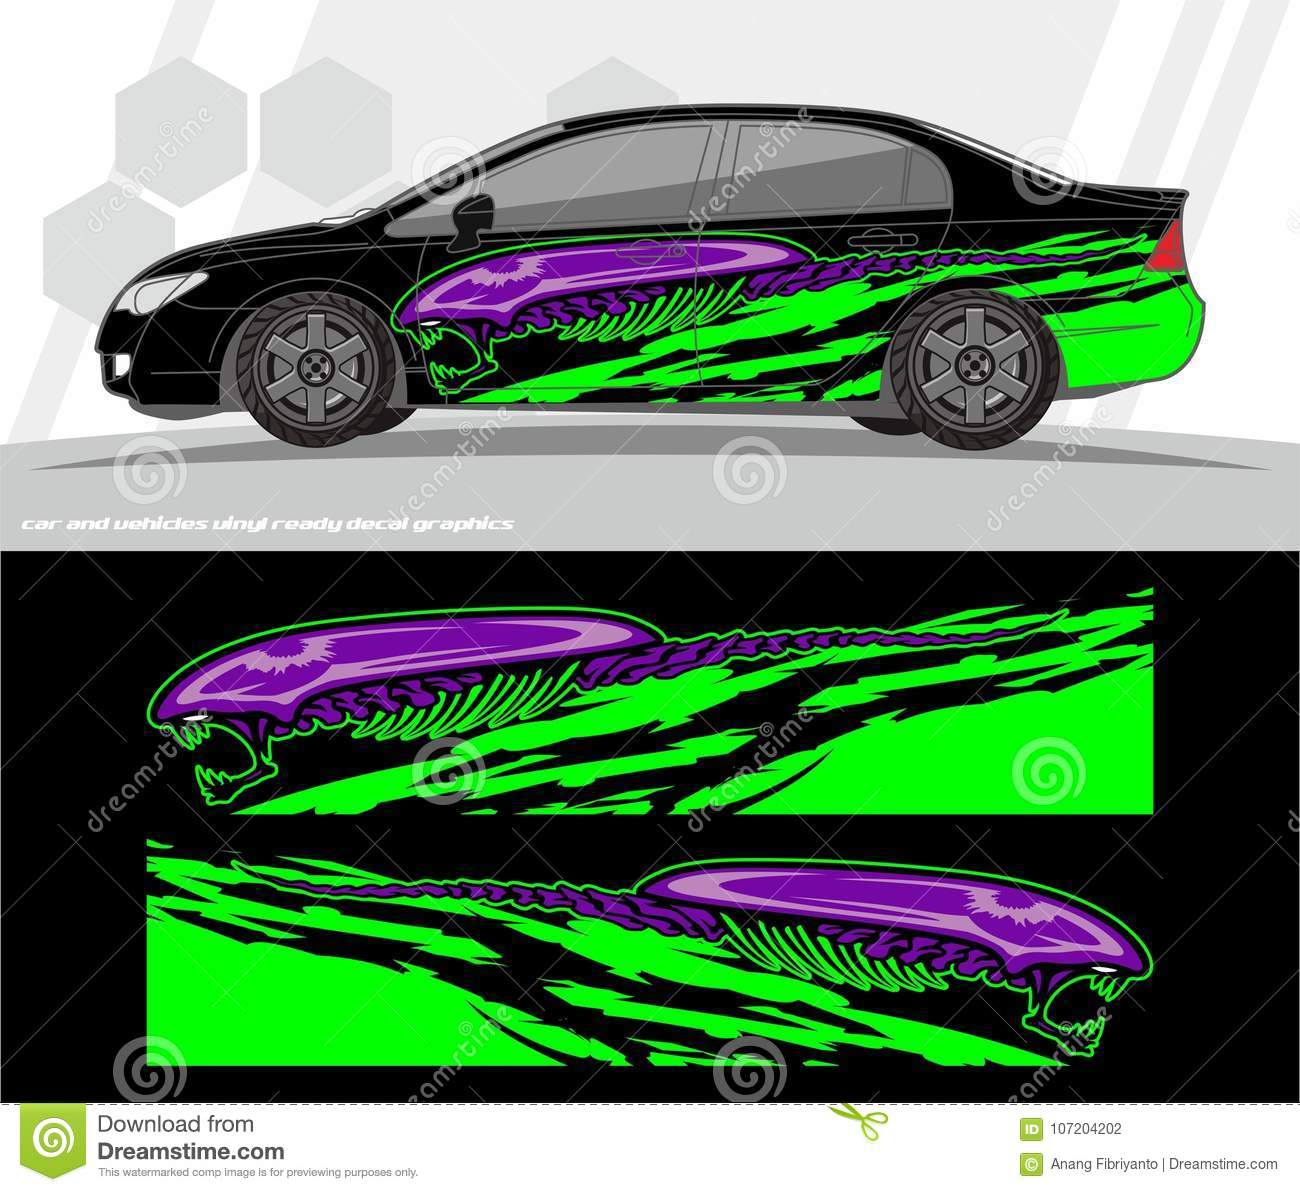 Car And Vehicles Wrap Decal Graphics Kit Vector Designs